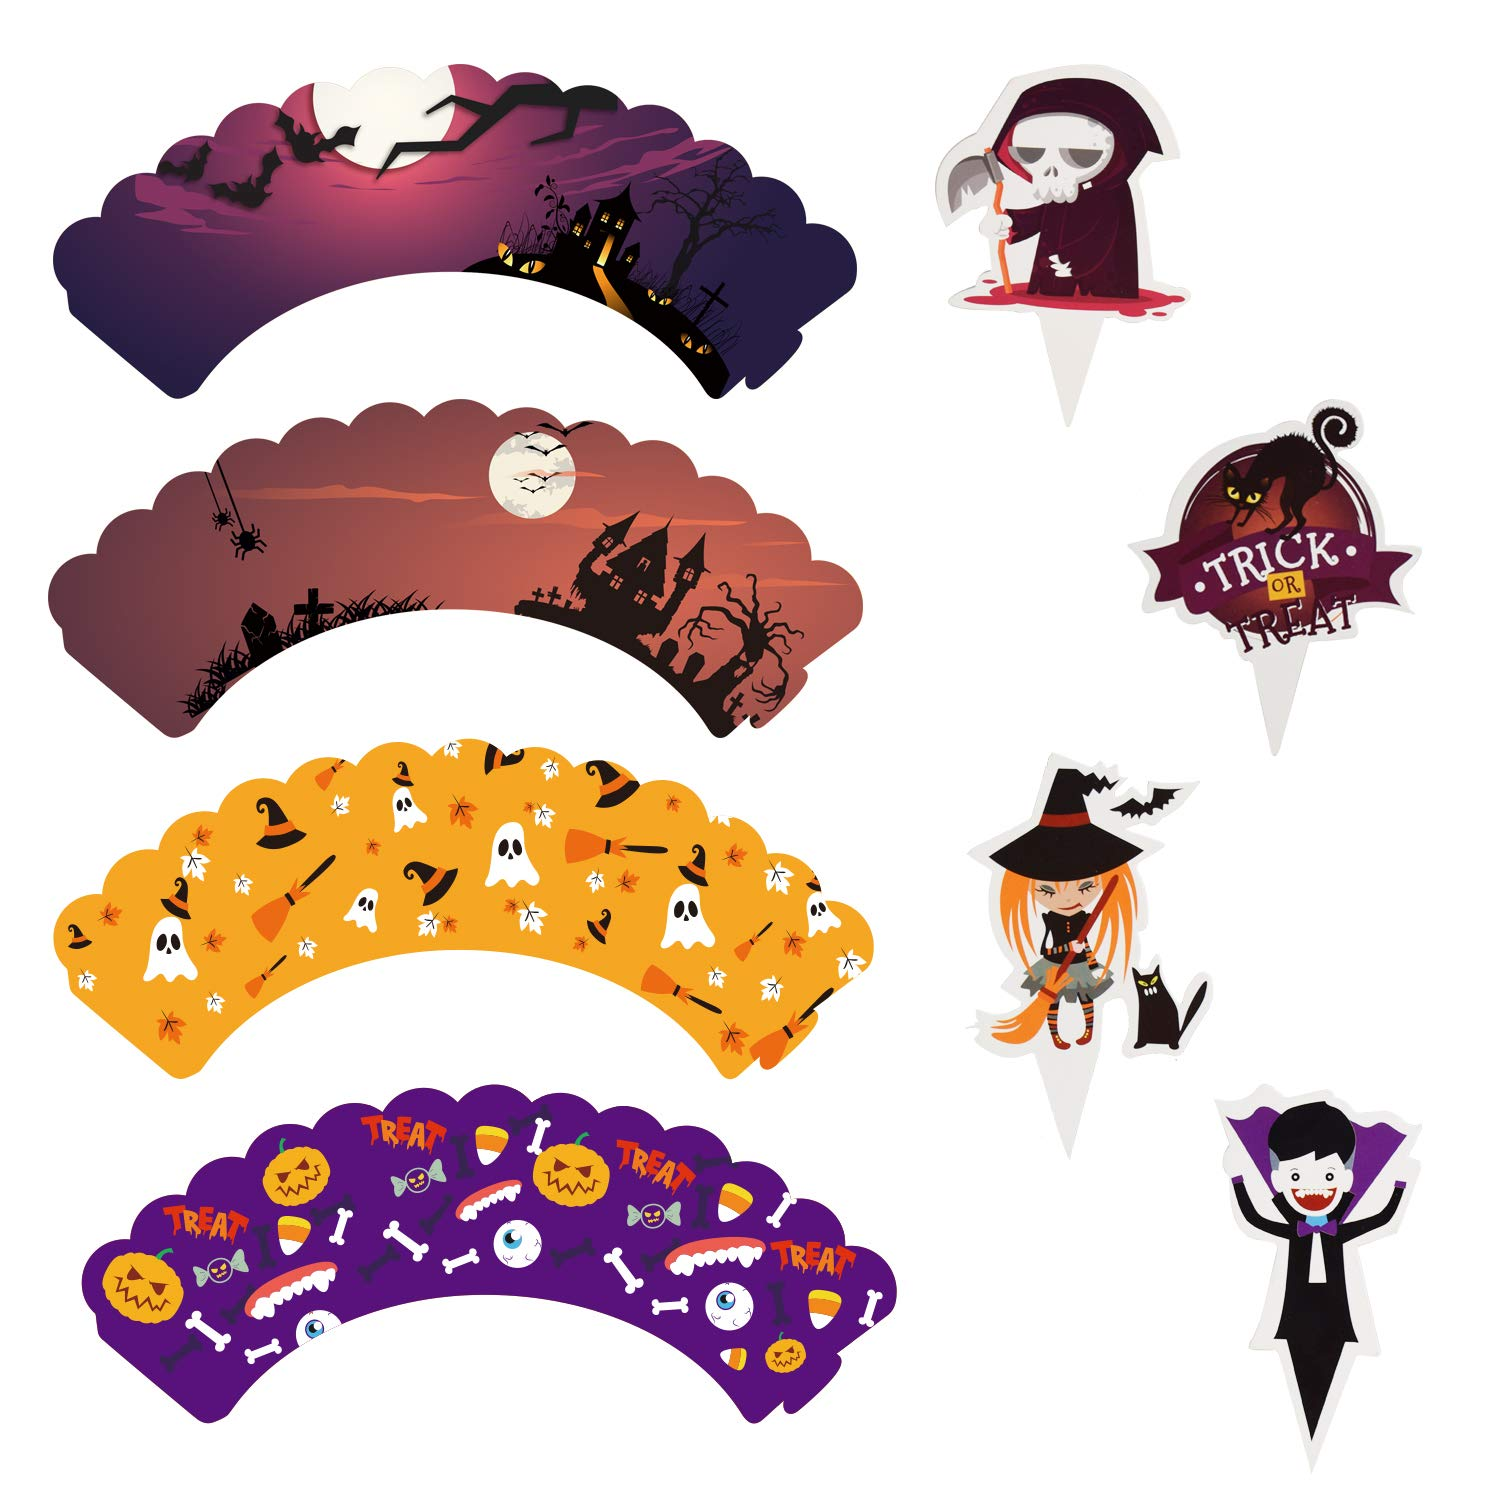 Four Different Types Toppers Wrappers for Cake Decorations MGparty 96 pcs Halloween Party Supplies-48 pcs Cupcake Toppers 48 pcs Wrappers